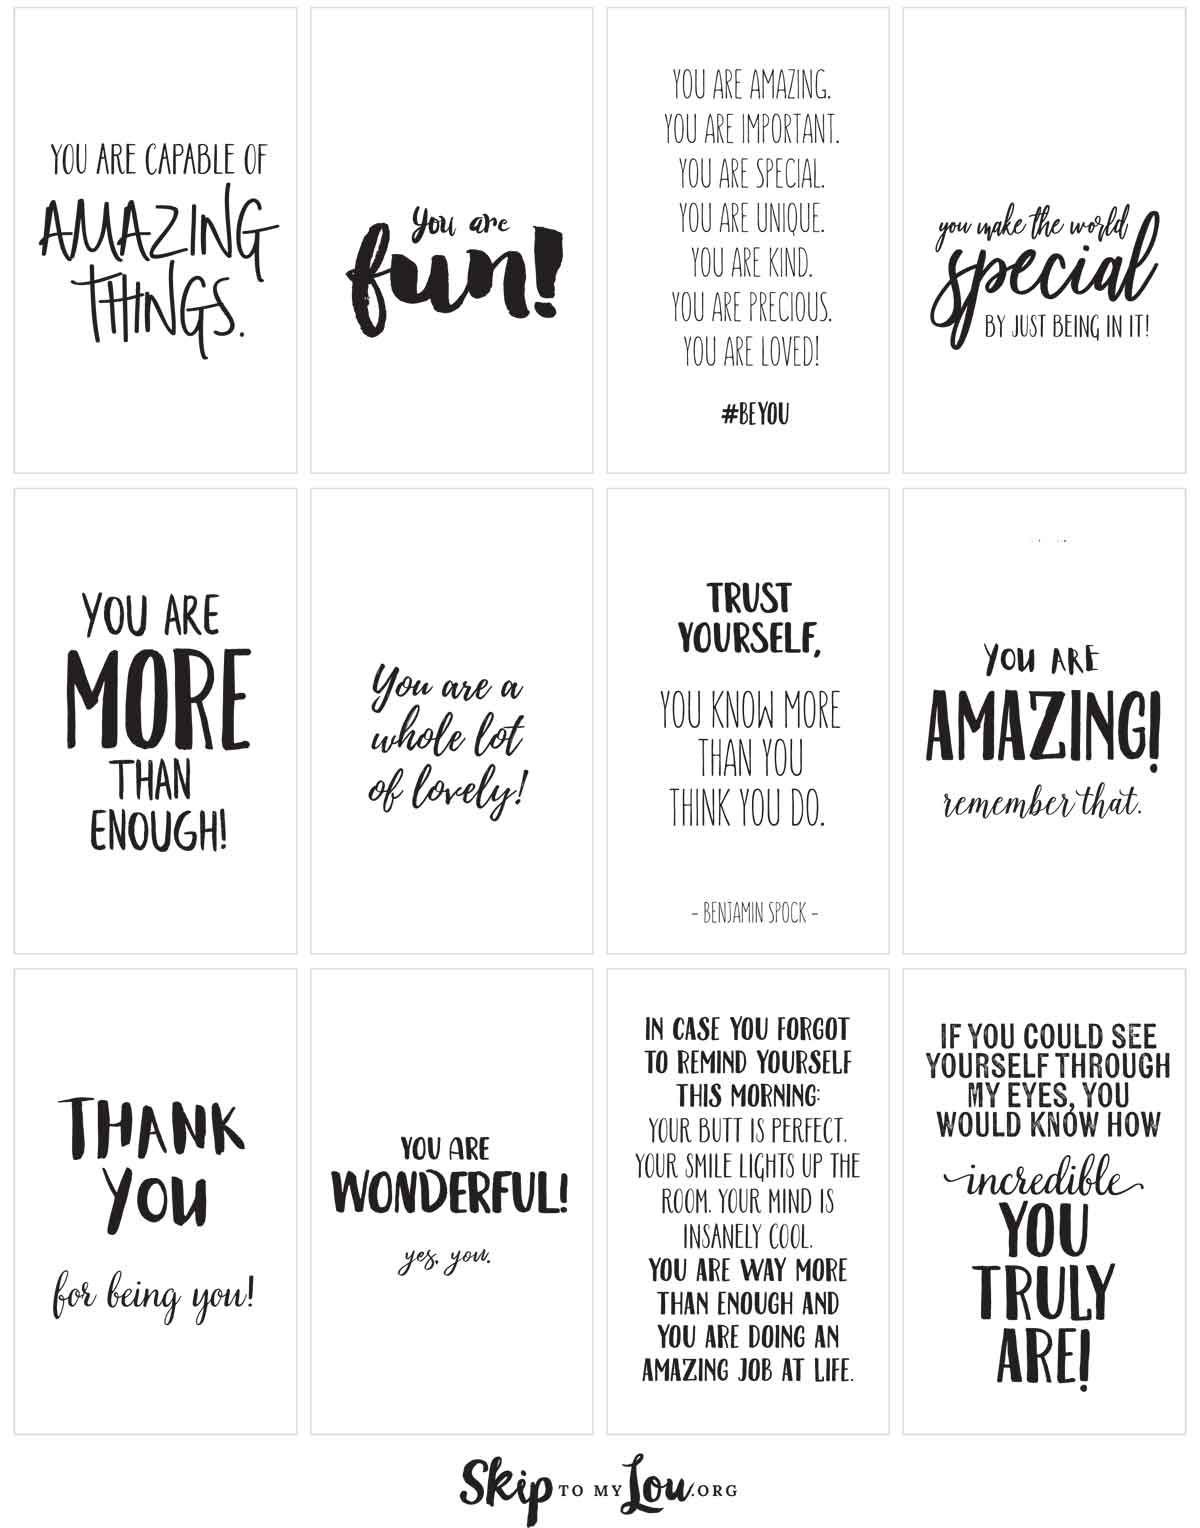 Positive Affirmations Print And Share With Friends